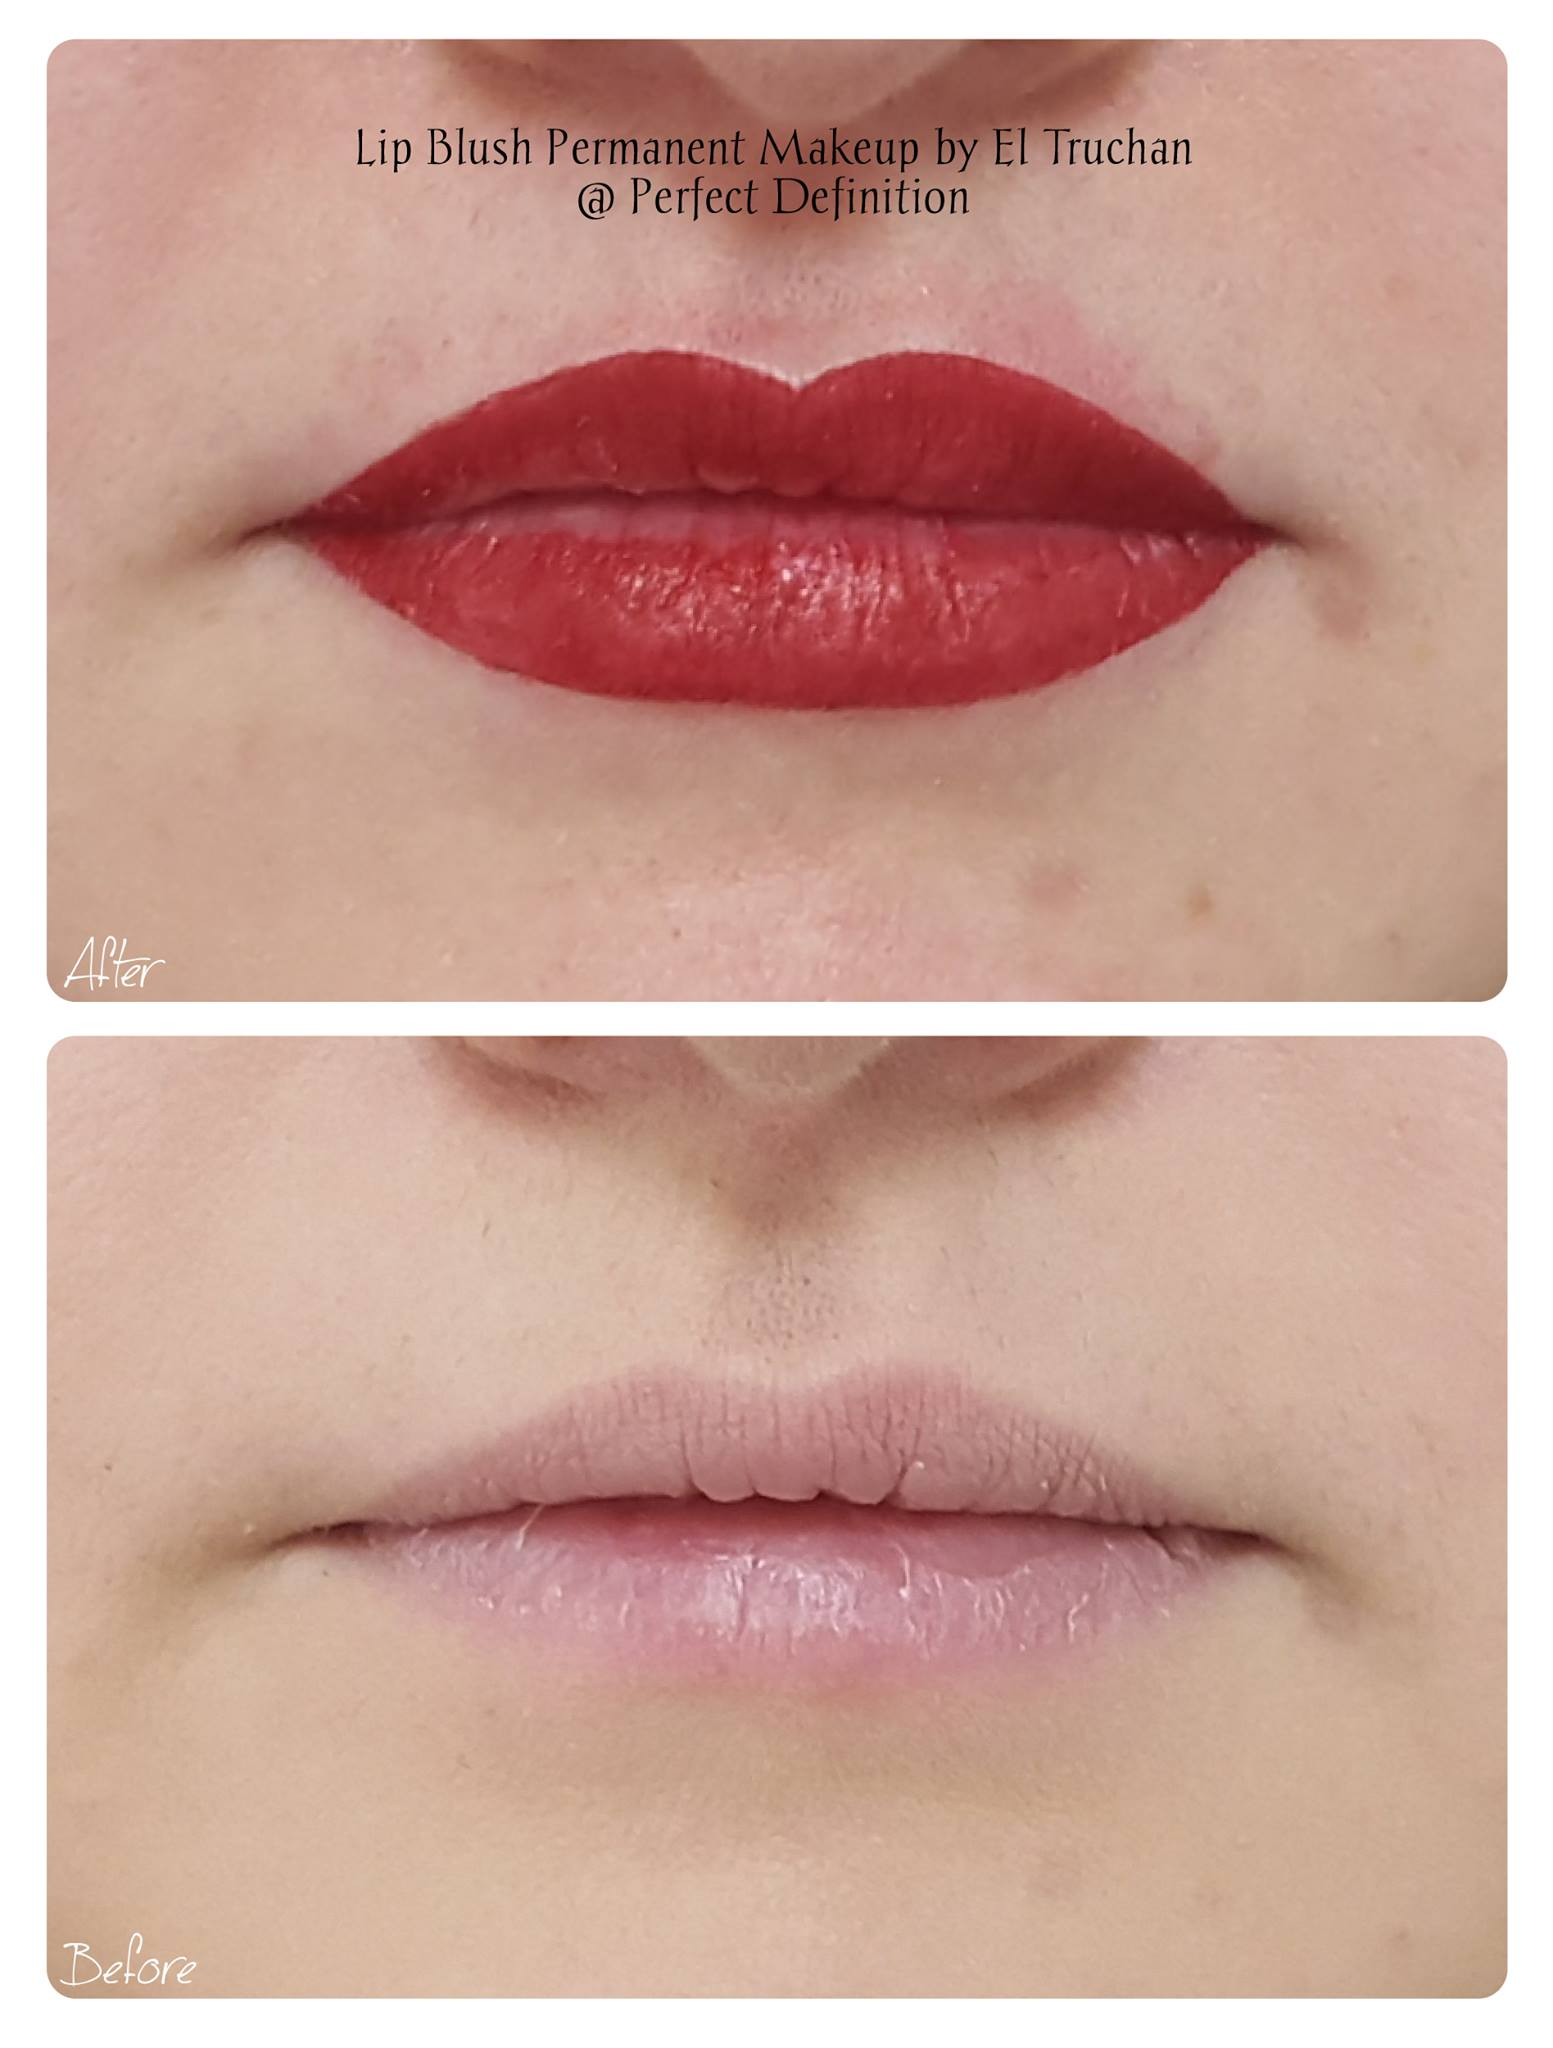 Lip Blush Permanent Makeup by El Truchan